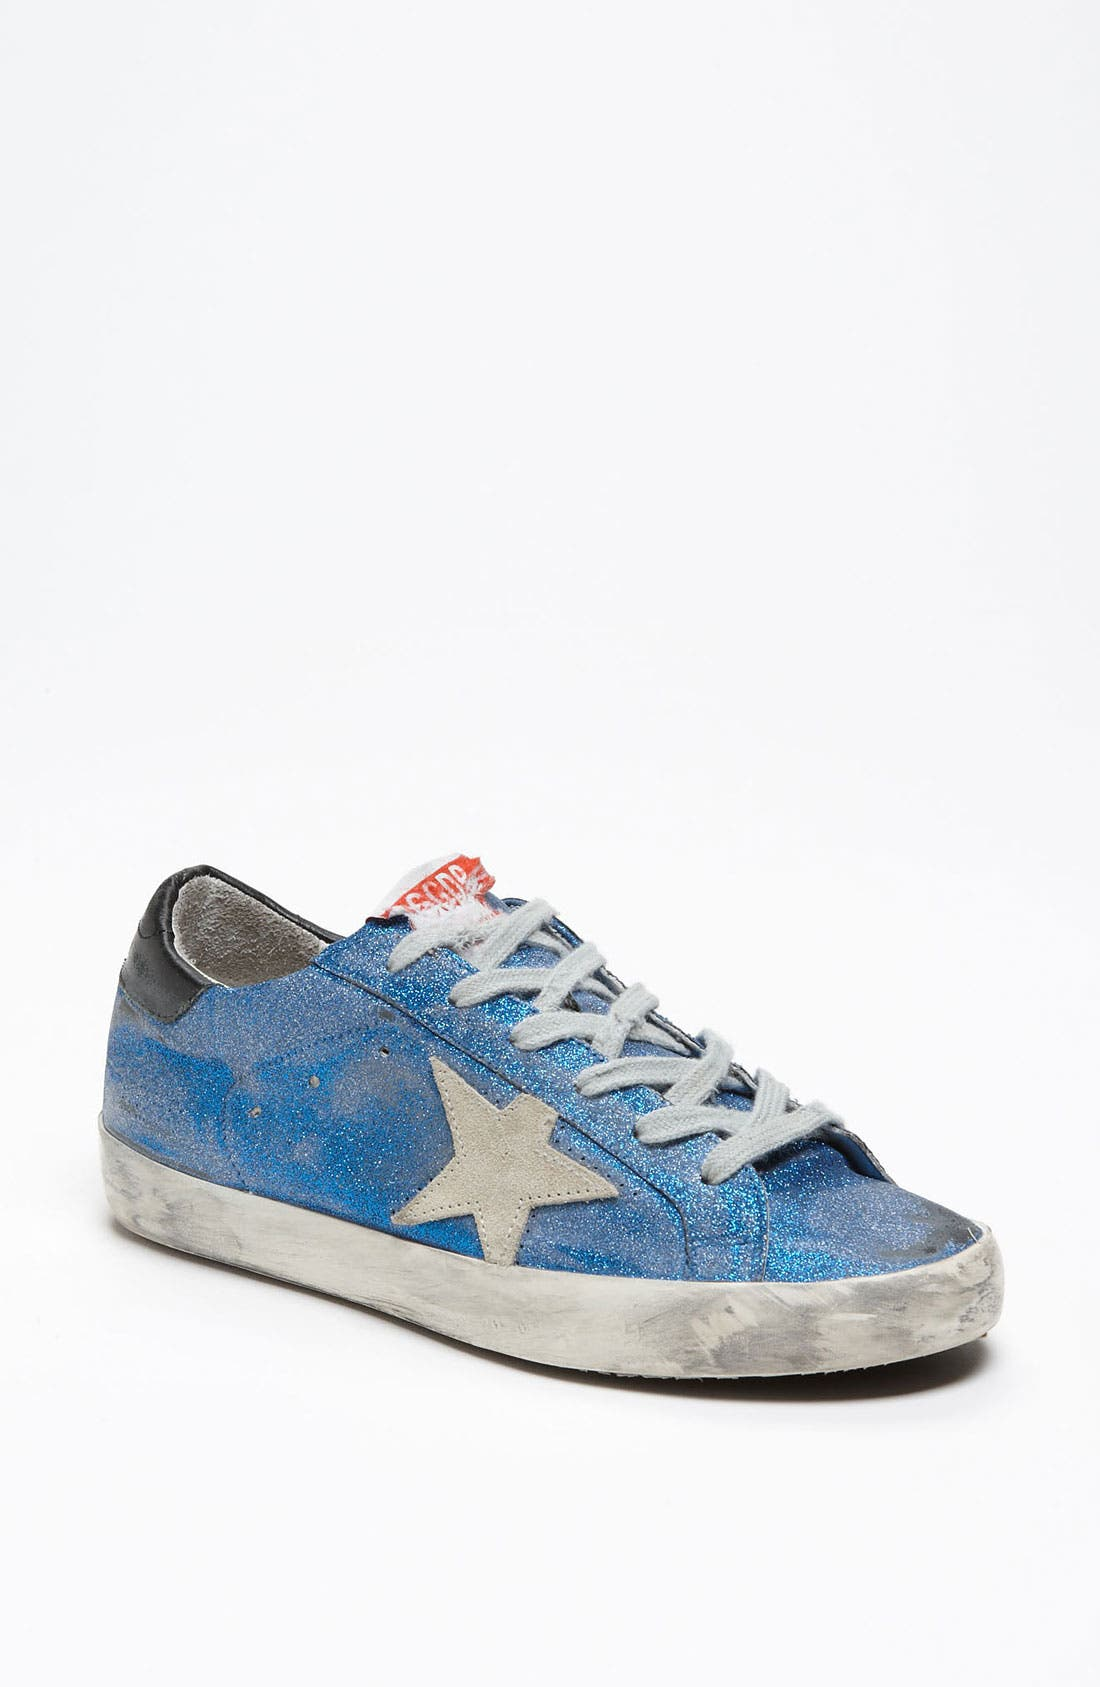 Alternate Image 1 Selected - Golden Goose 'Superstar' Sneaker